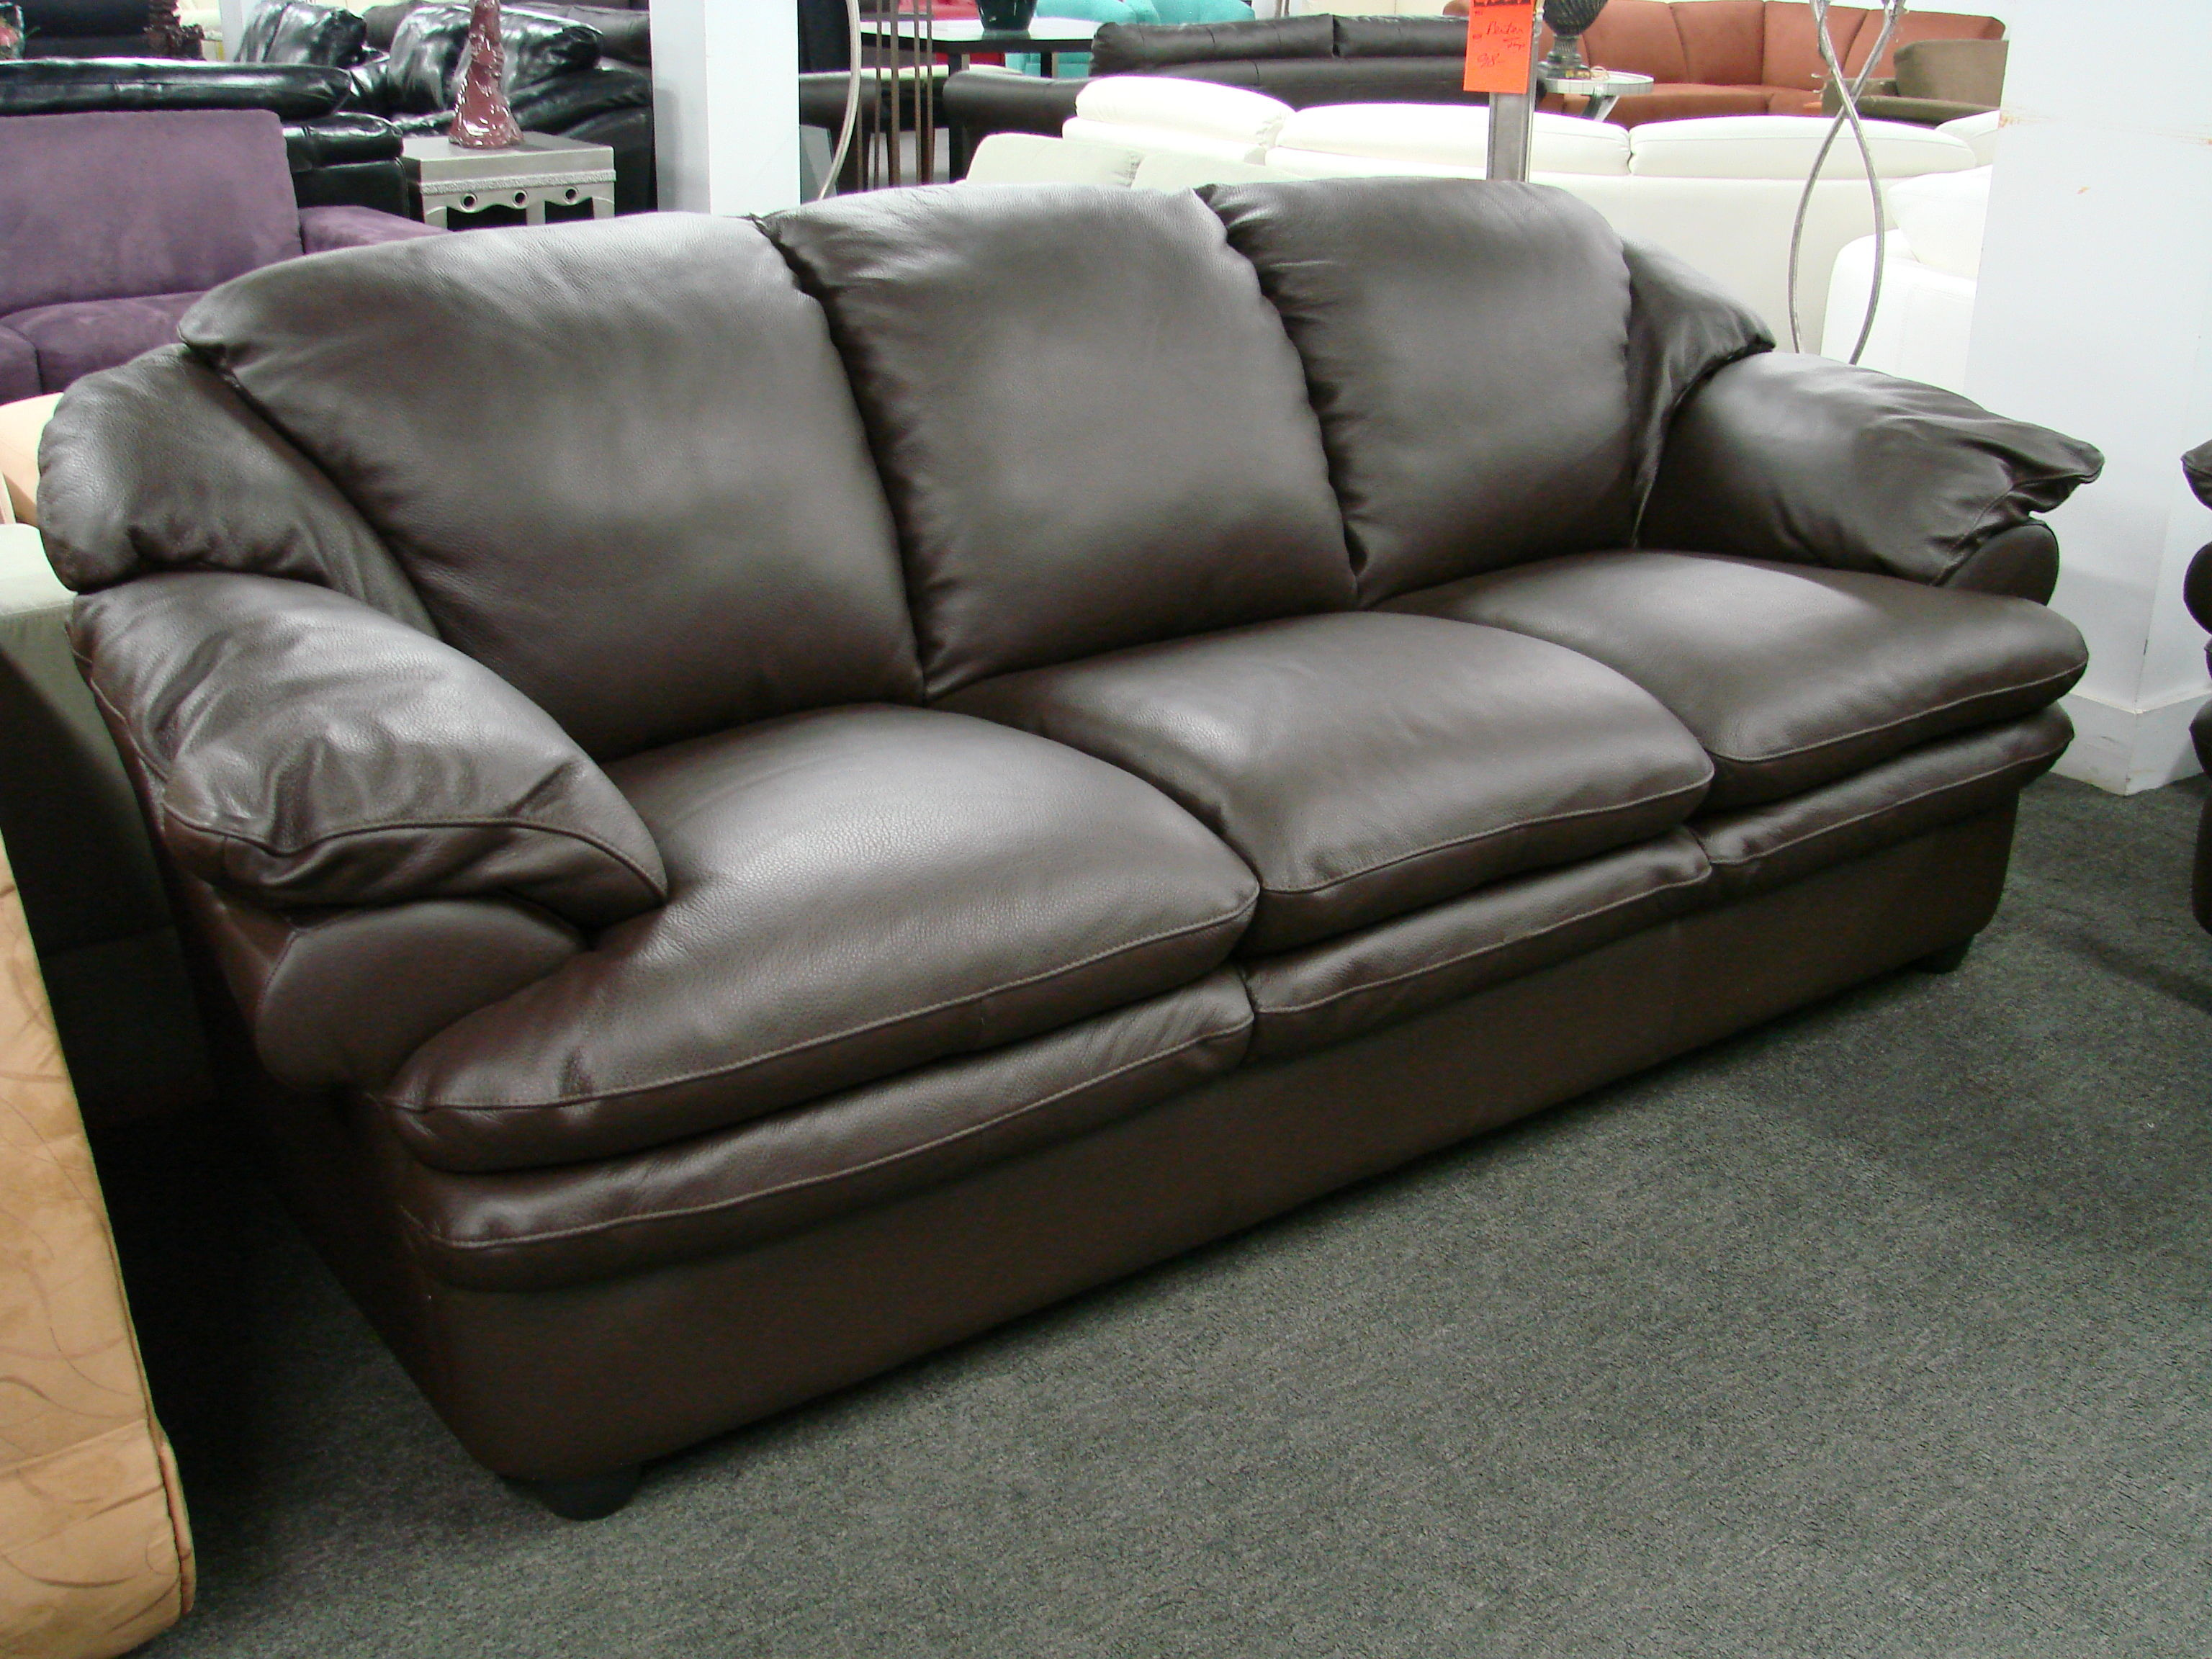 Awesome Natuzzi Leather Sofa Reviews Concept Excellent Online